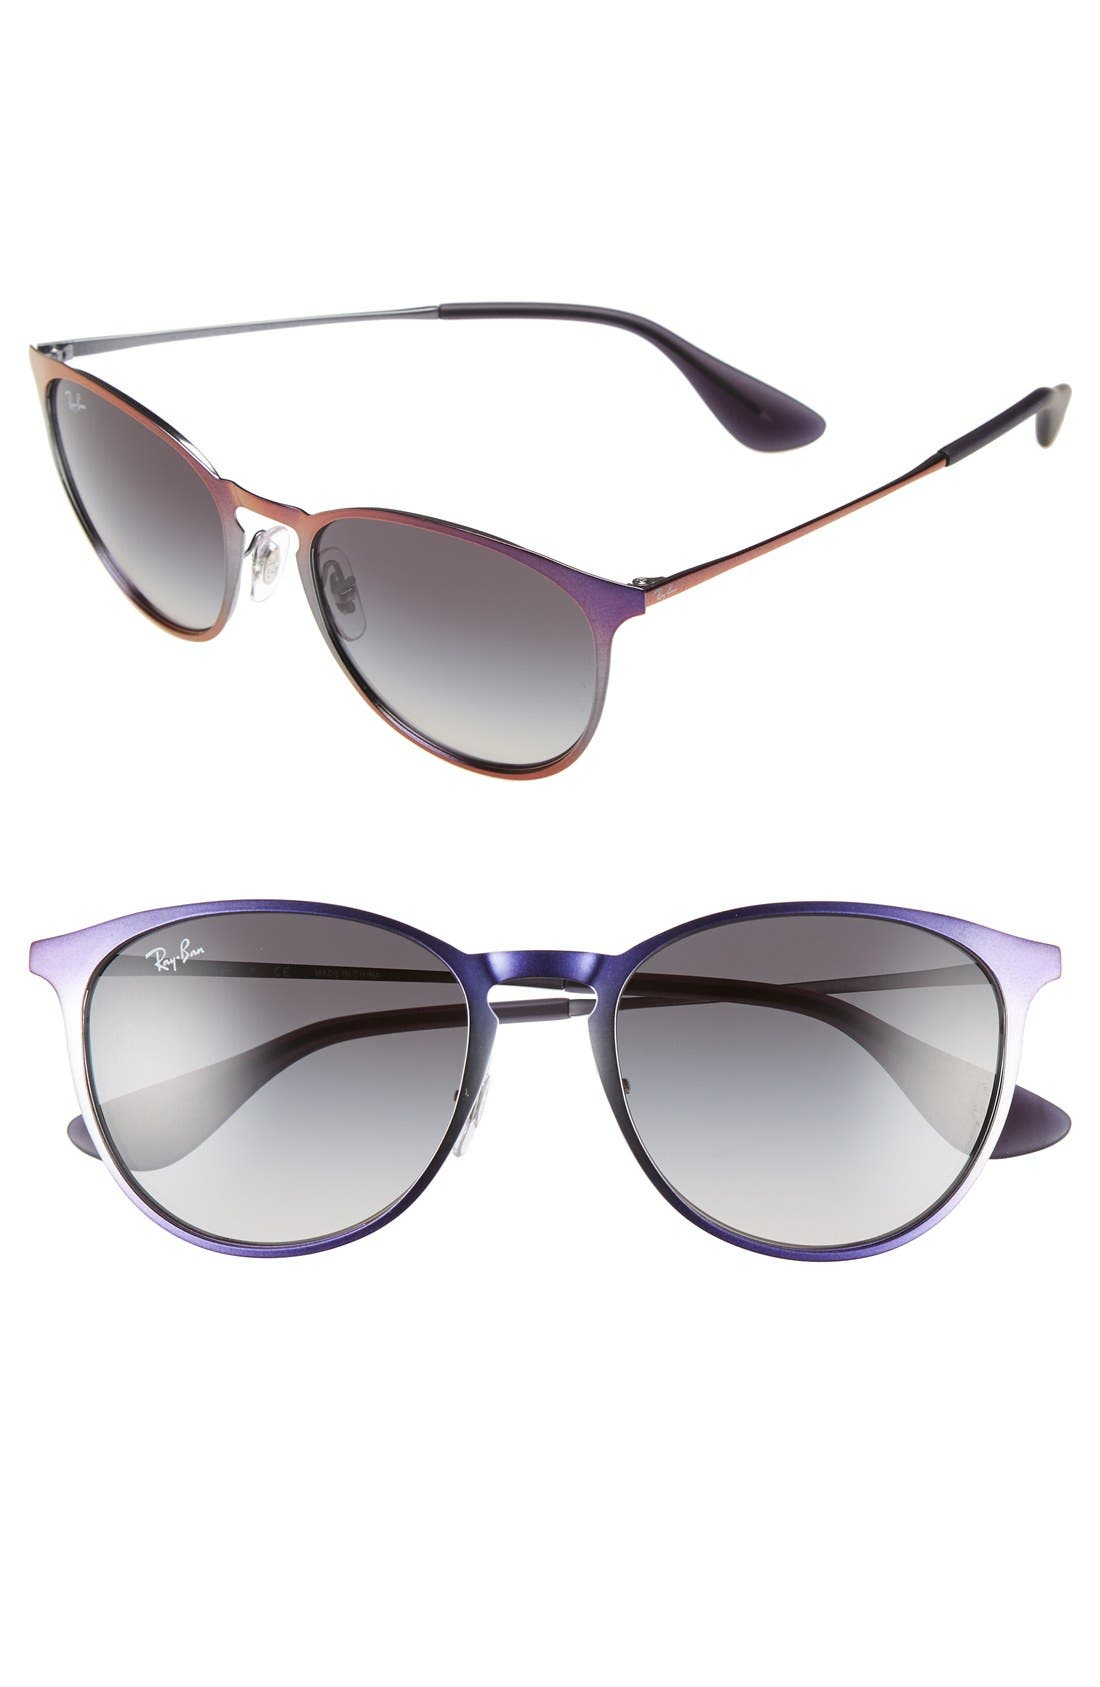 Main Image - Ray-Ban 'Youngster' 54mm Sunglasses